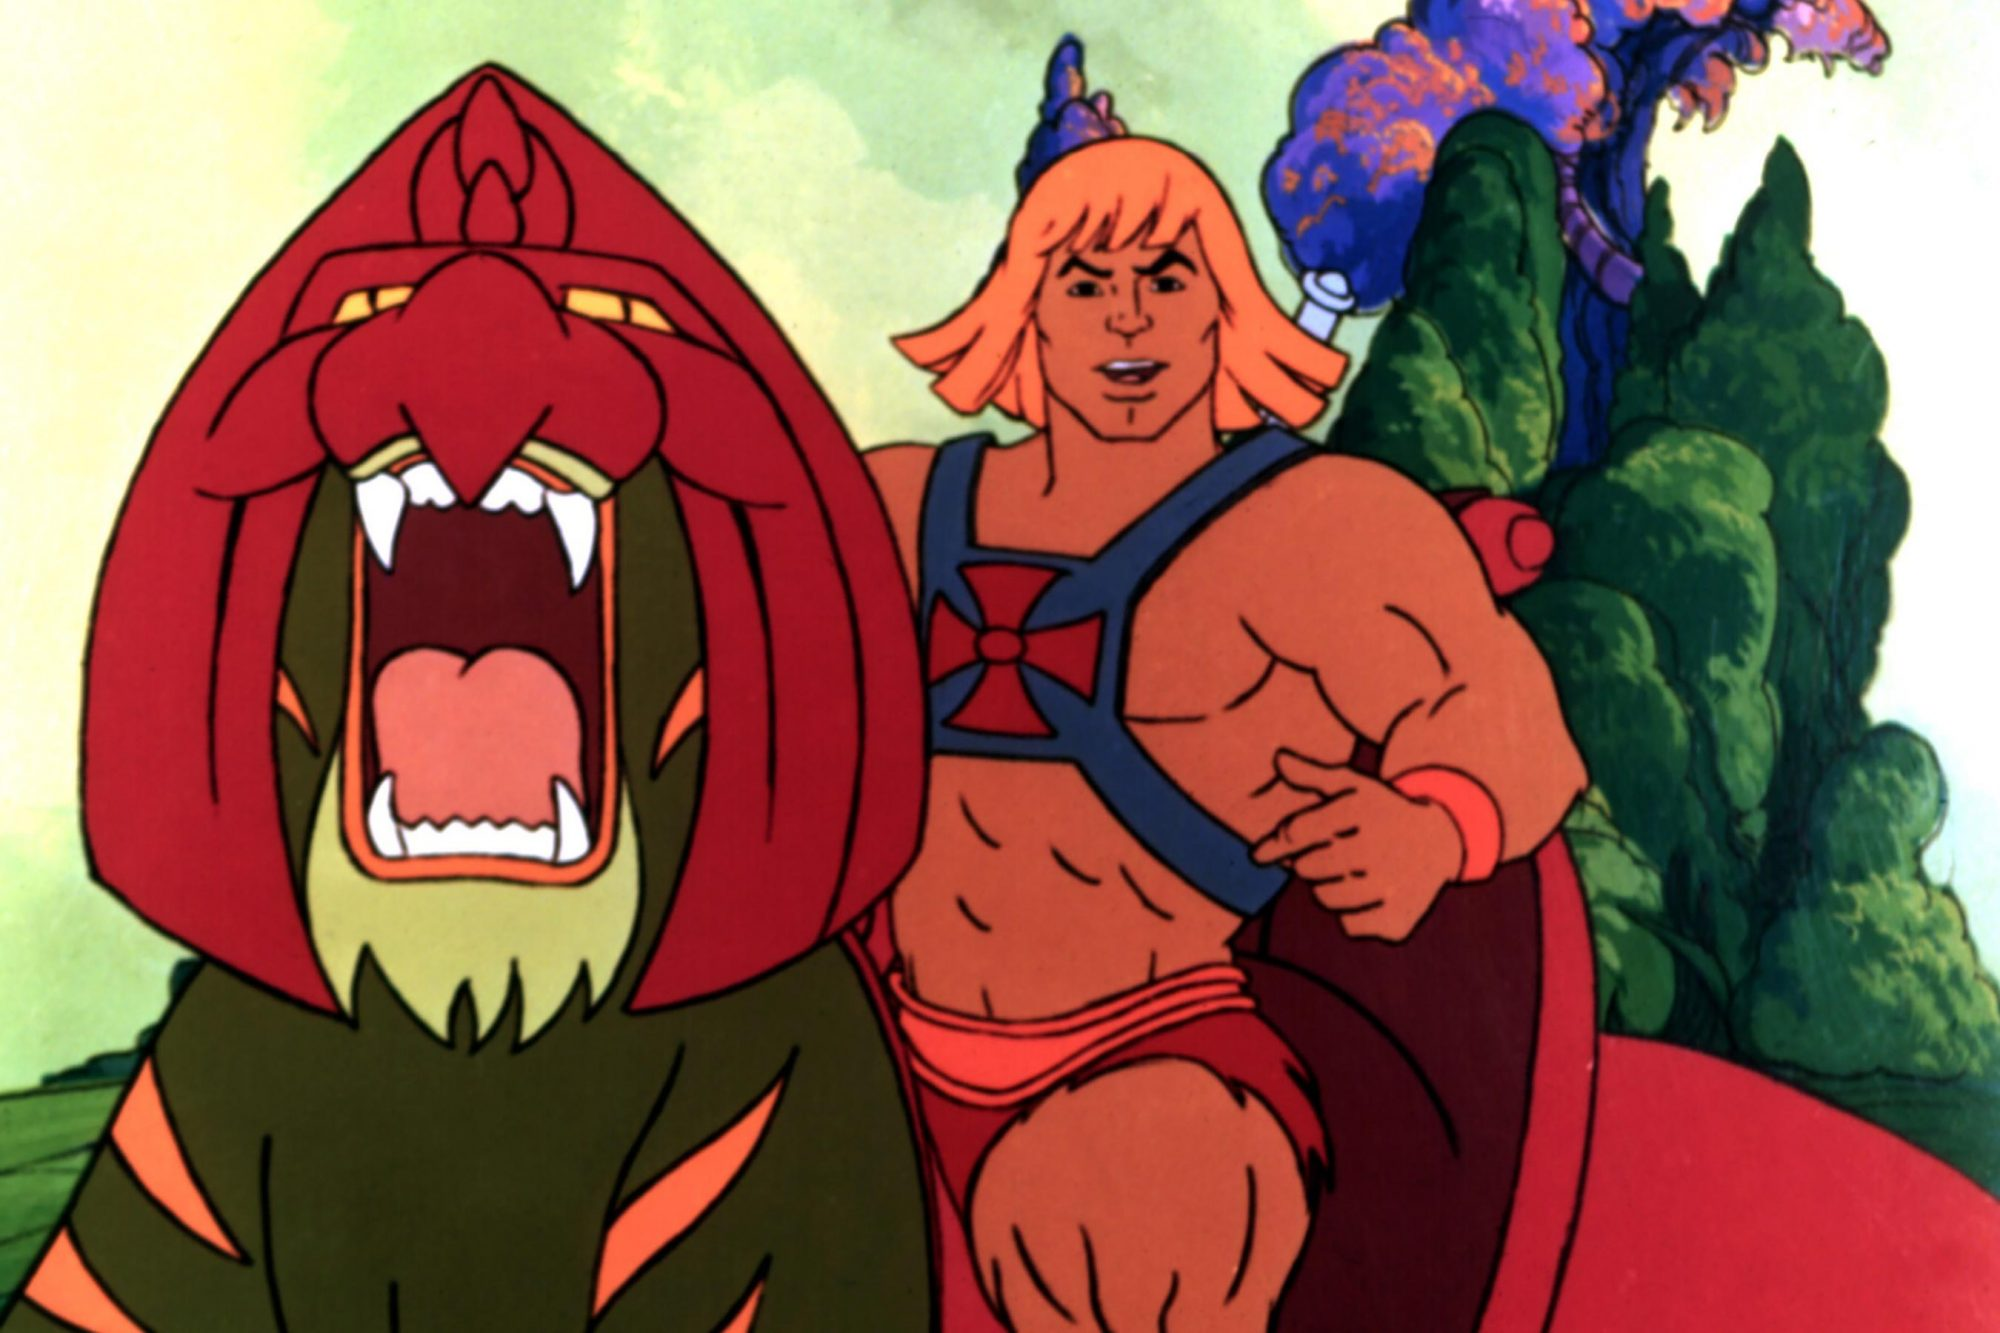 HE-MAN AND THE MASTERS OF THE UNIVERSE, He-Man, 1983-1985